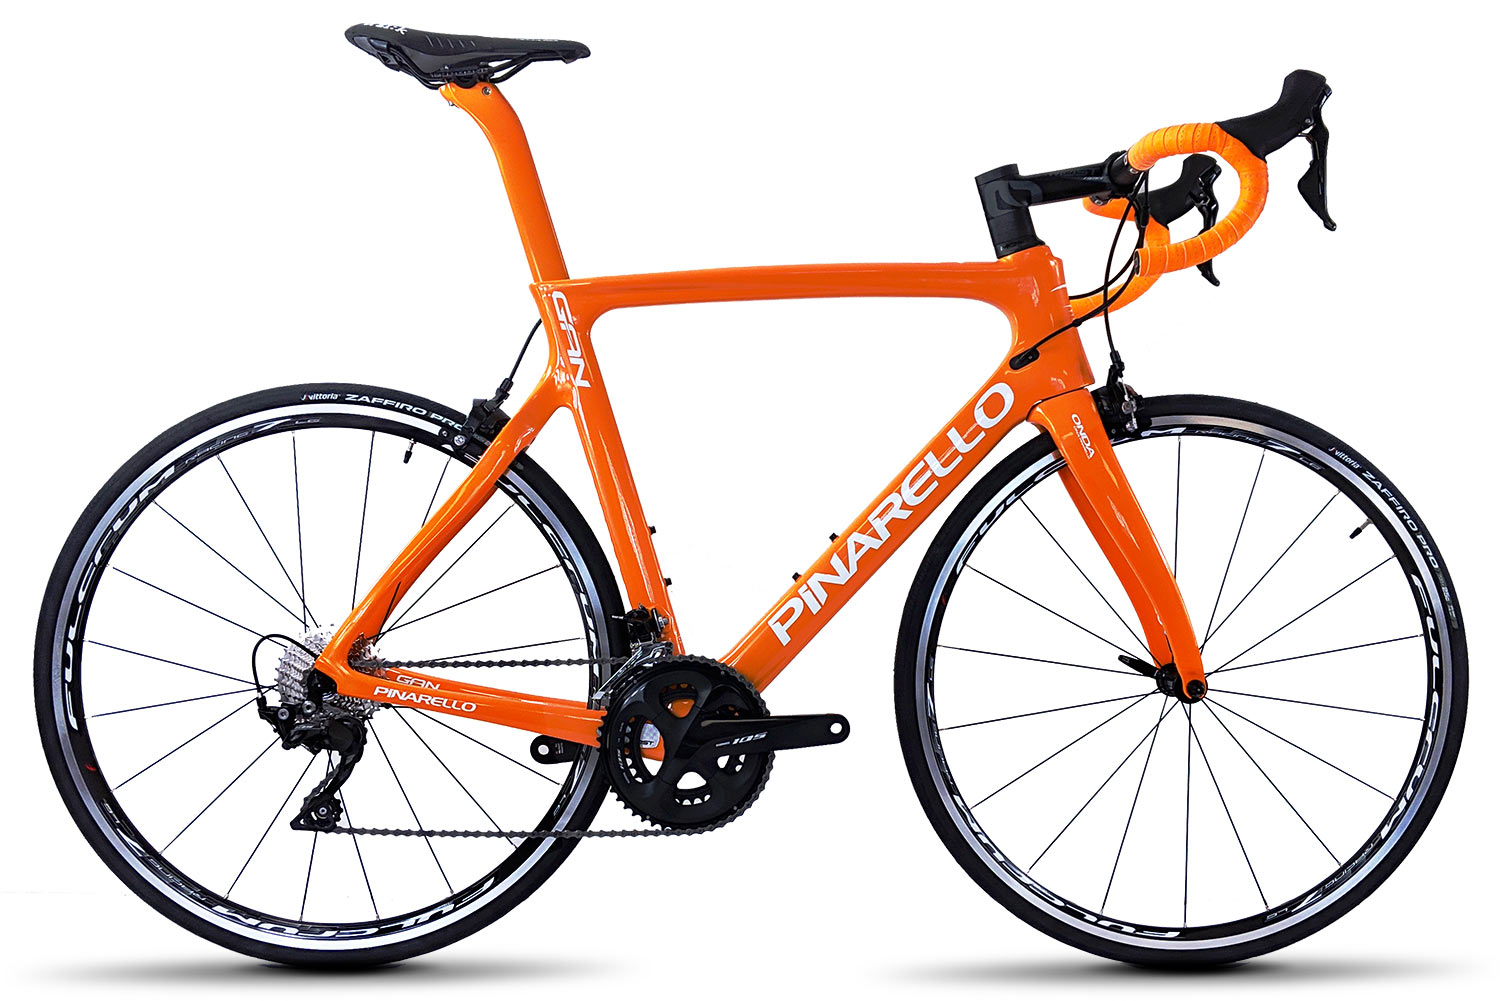 Pinarello Gan 105 - 2019 Road Bike - Size 56 Only | Racercykler